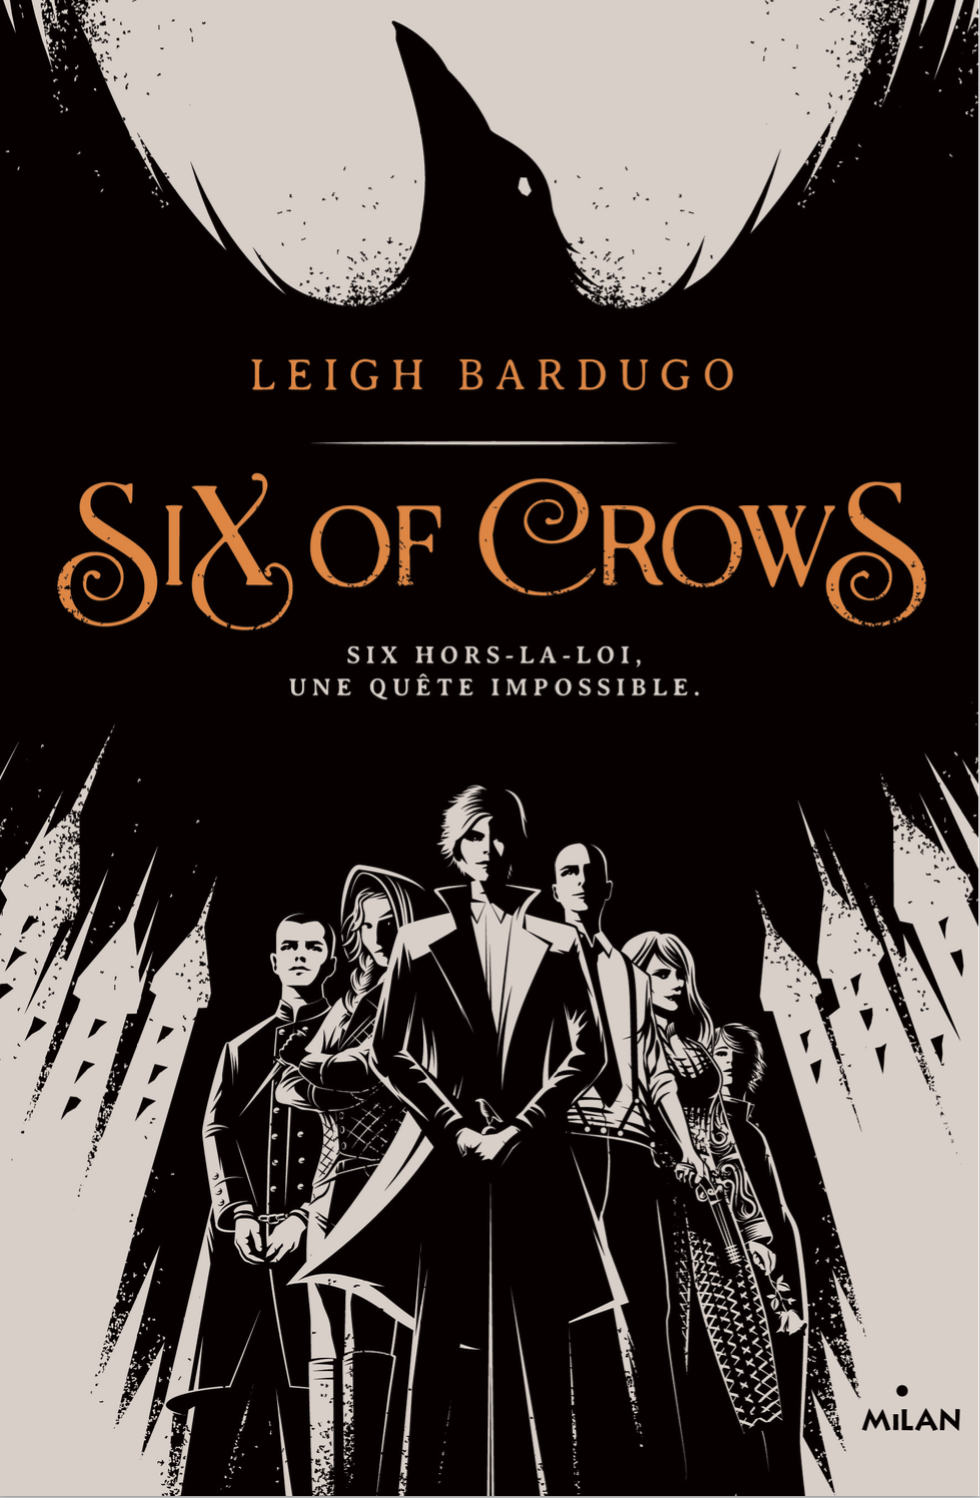 Image de l'article « Lisez Six of Crows gratuitement »